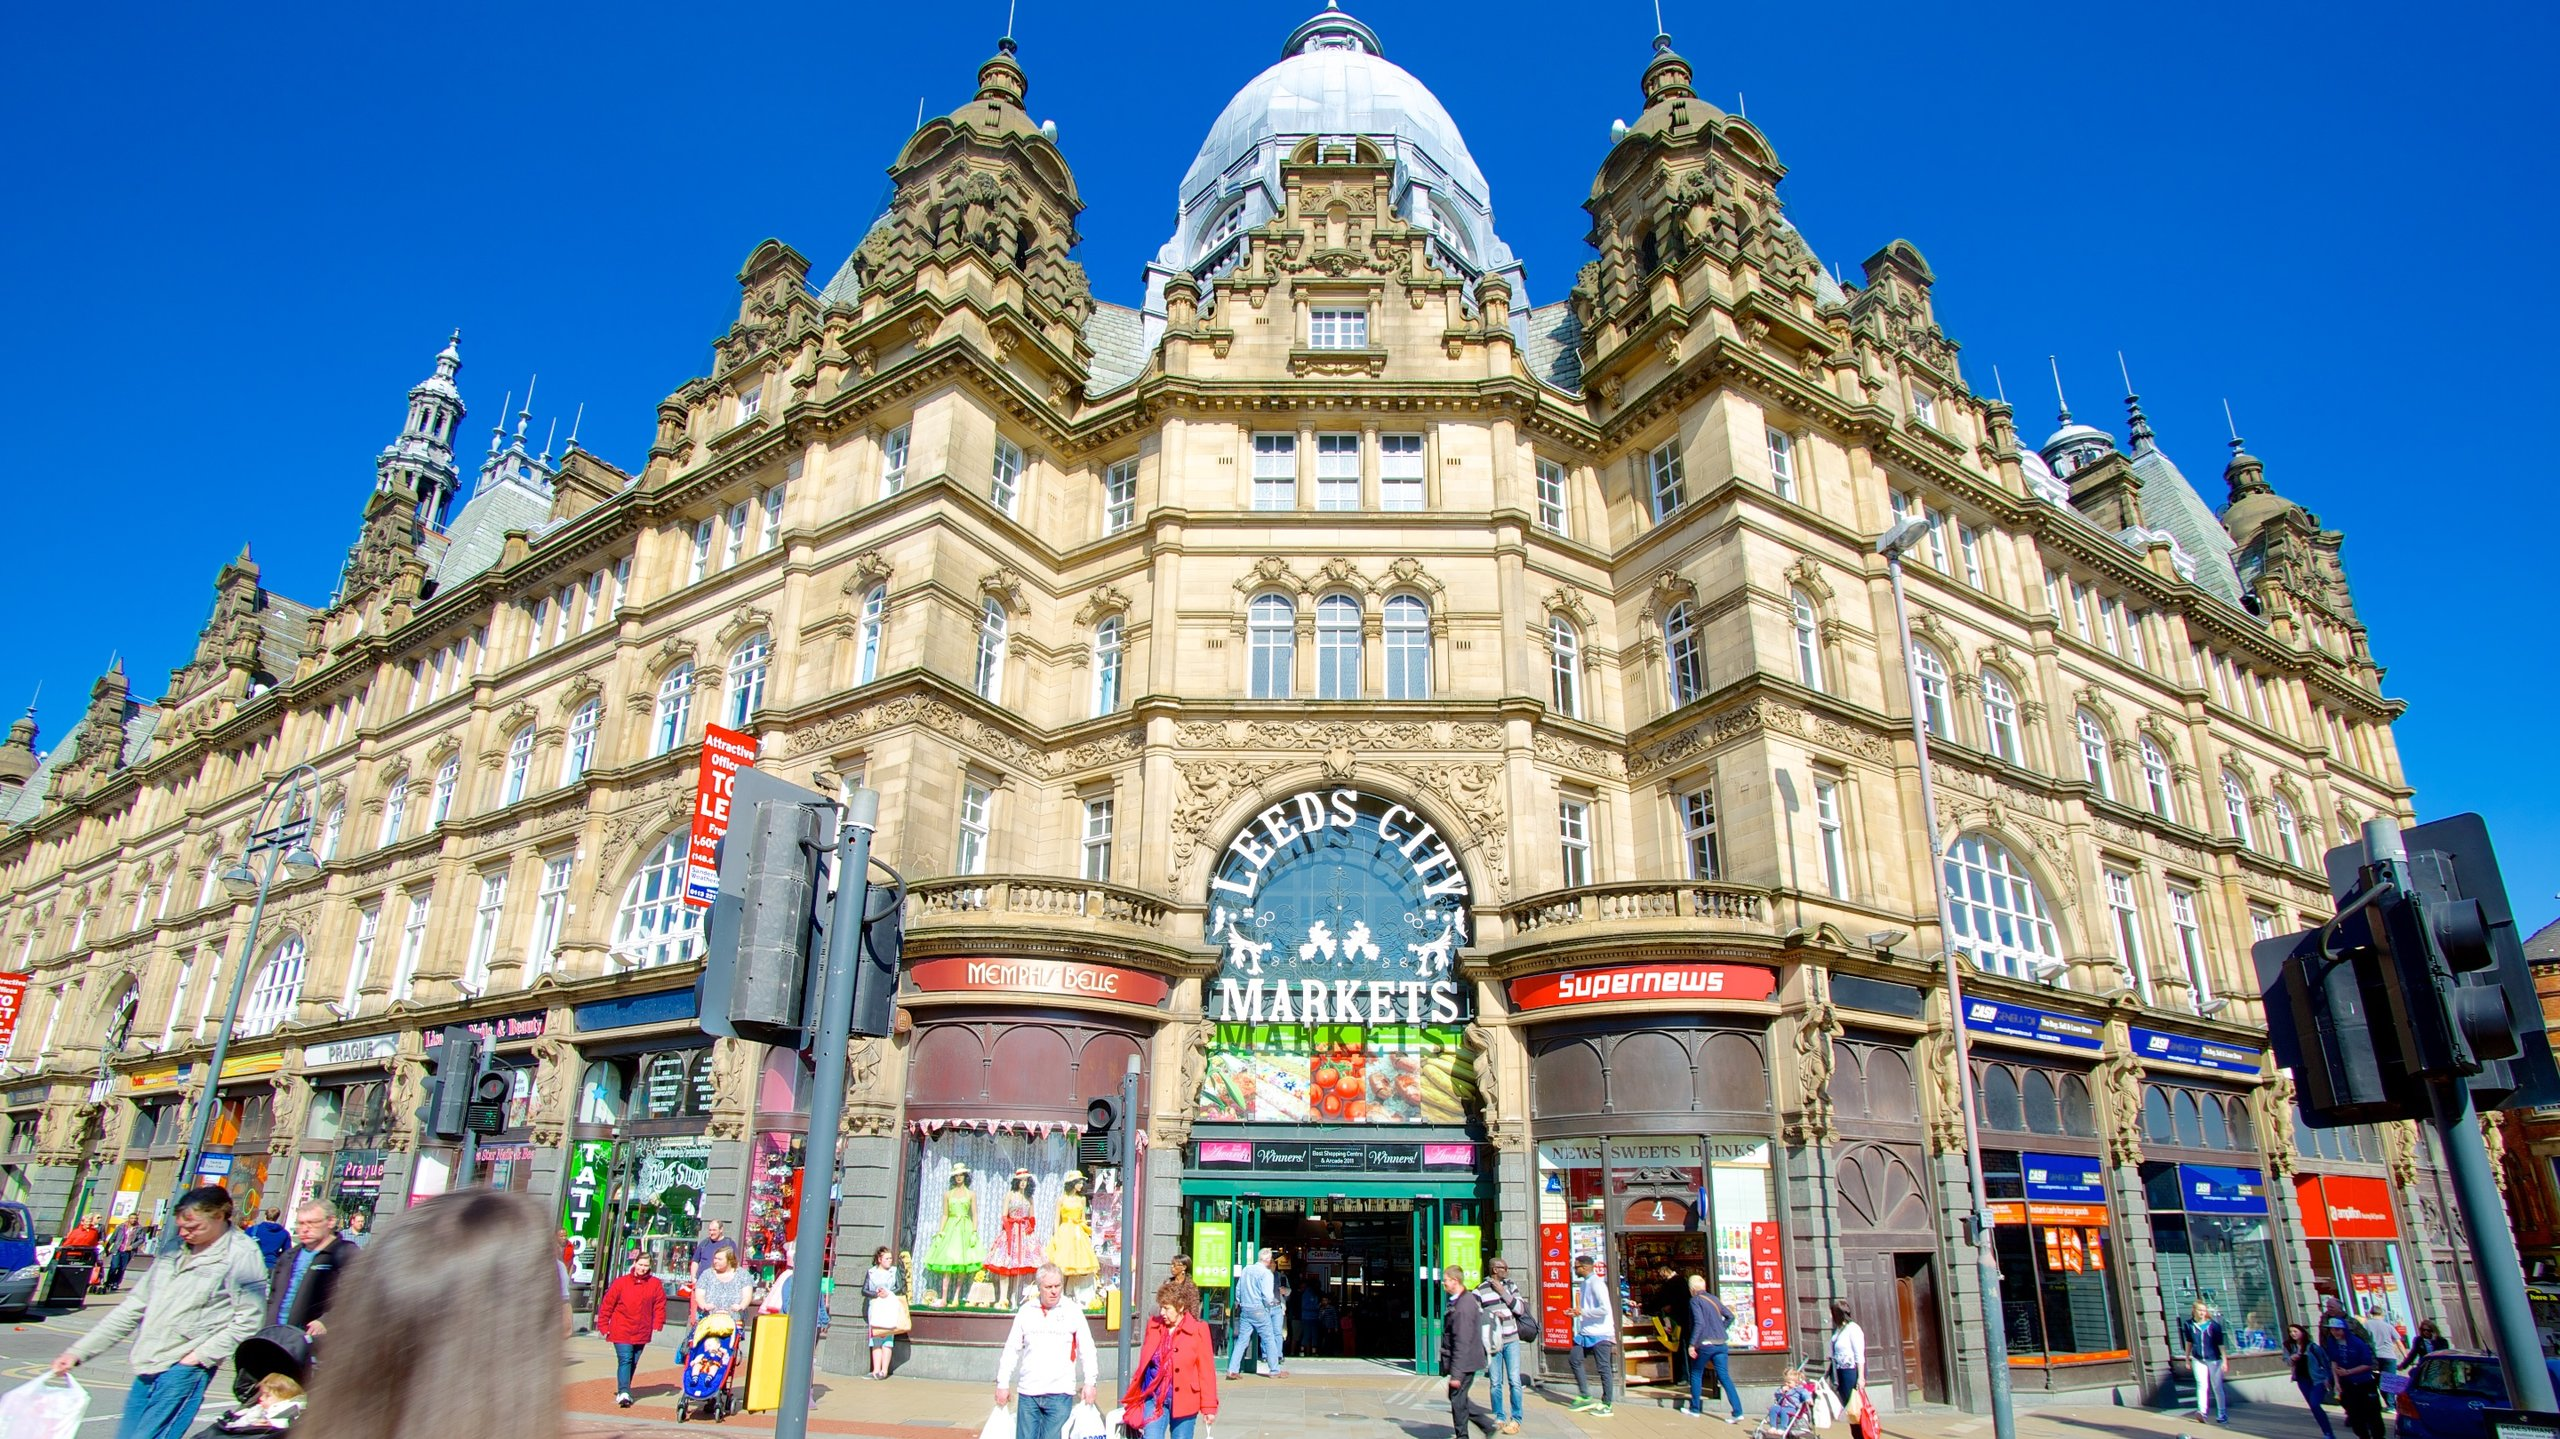 Enjoy Asian cuisine and browse the range of trinkets, food and flowers in one of the largest covered markets in Europe.